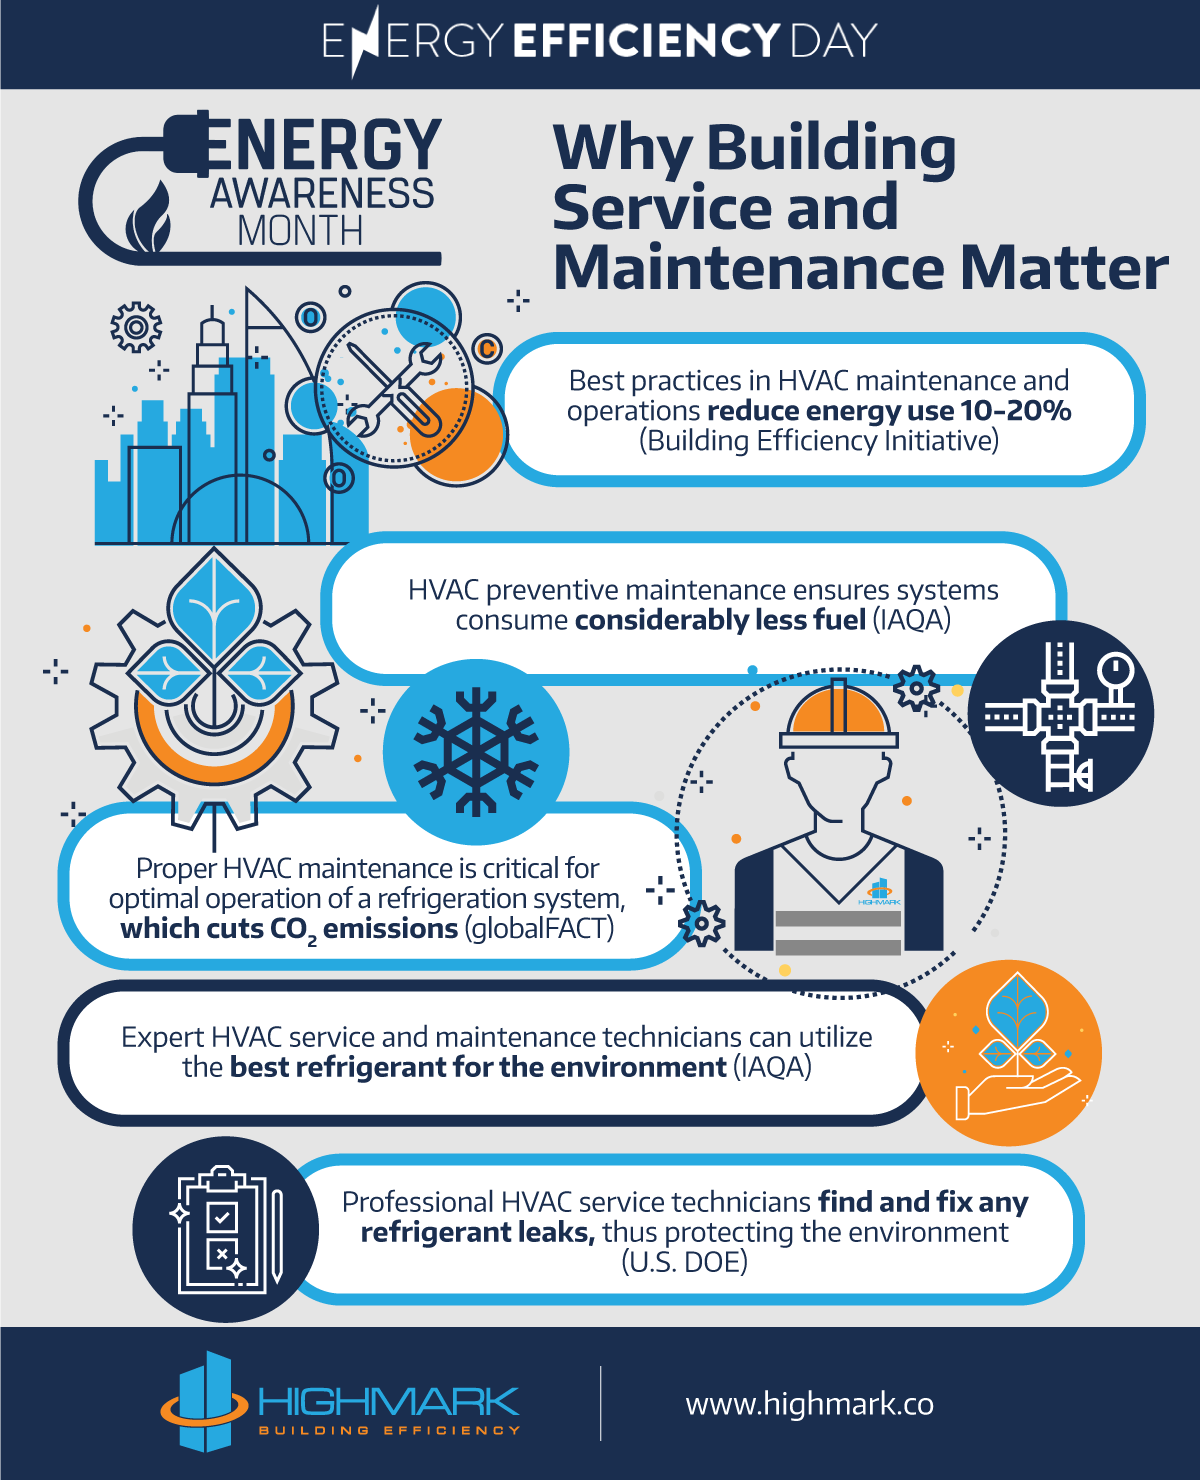 Why Building Service and Maintenance Matter - HIGHMARK | Building Efficiency